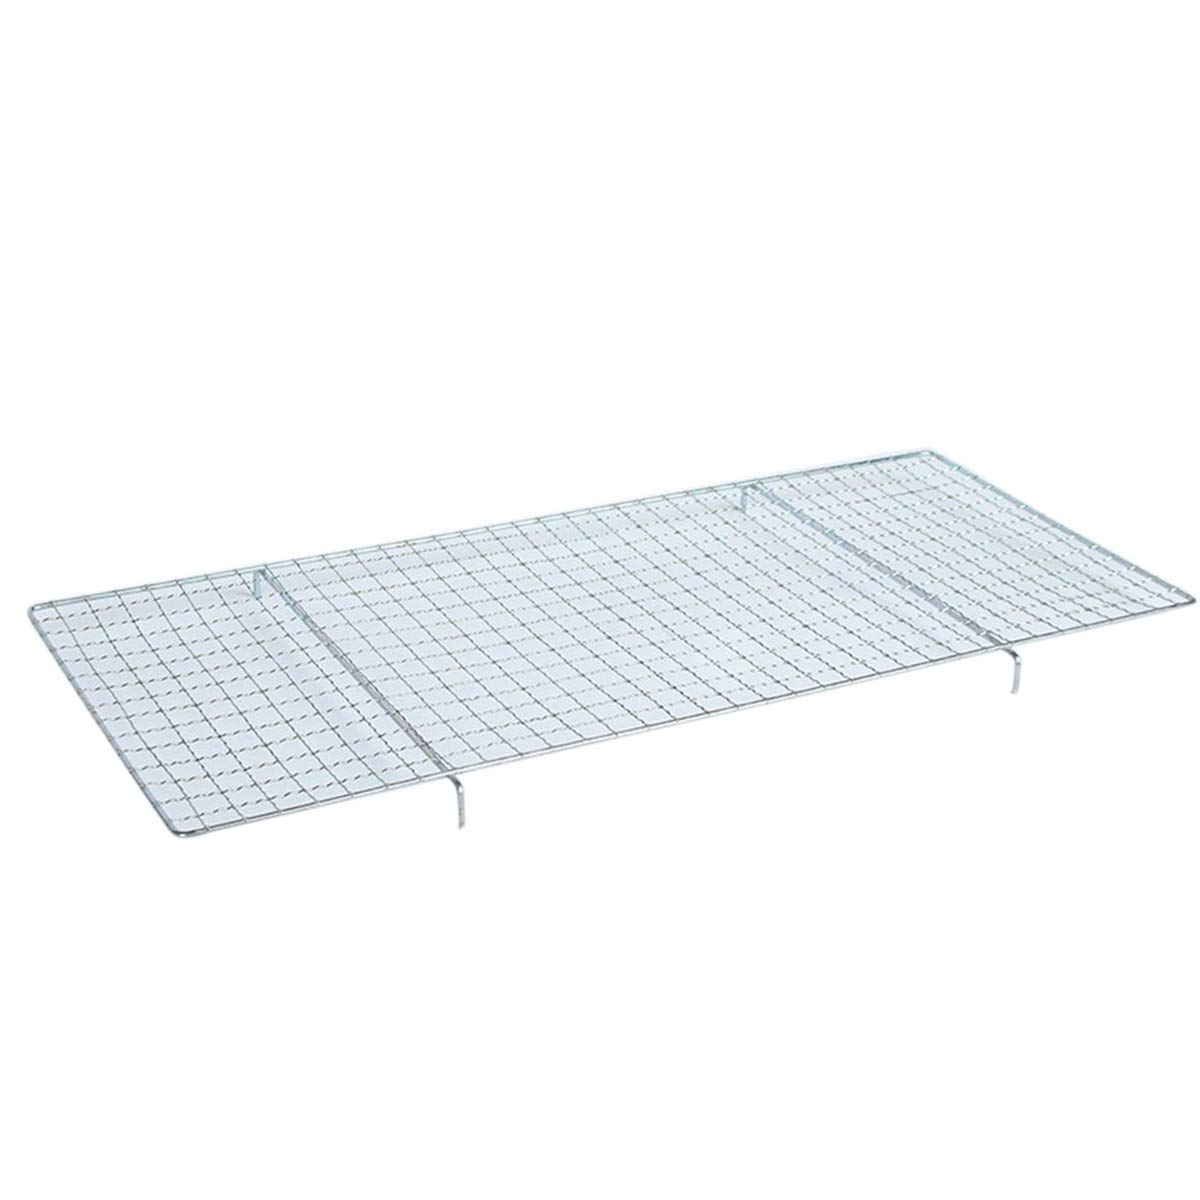 Godagoda Multipurpose Stainless Steel Non-Stick Barbecue Baking Wire Mesh Grill Rectangle BBQ Net Mesh Barbecue Racks/Carbon Baking Net/Grill/Cooling Racks (with Stand Leg)